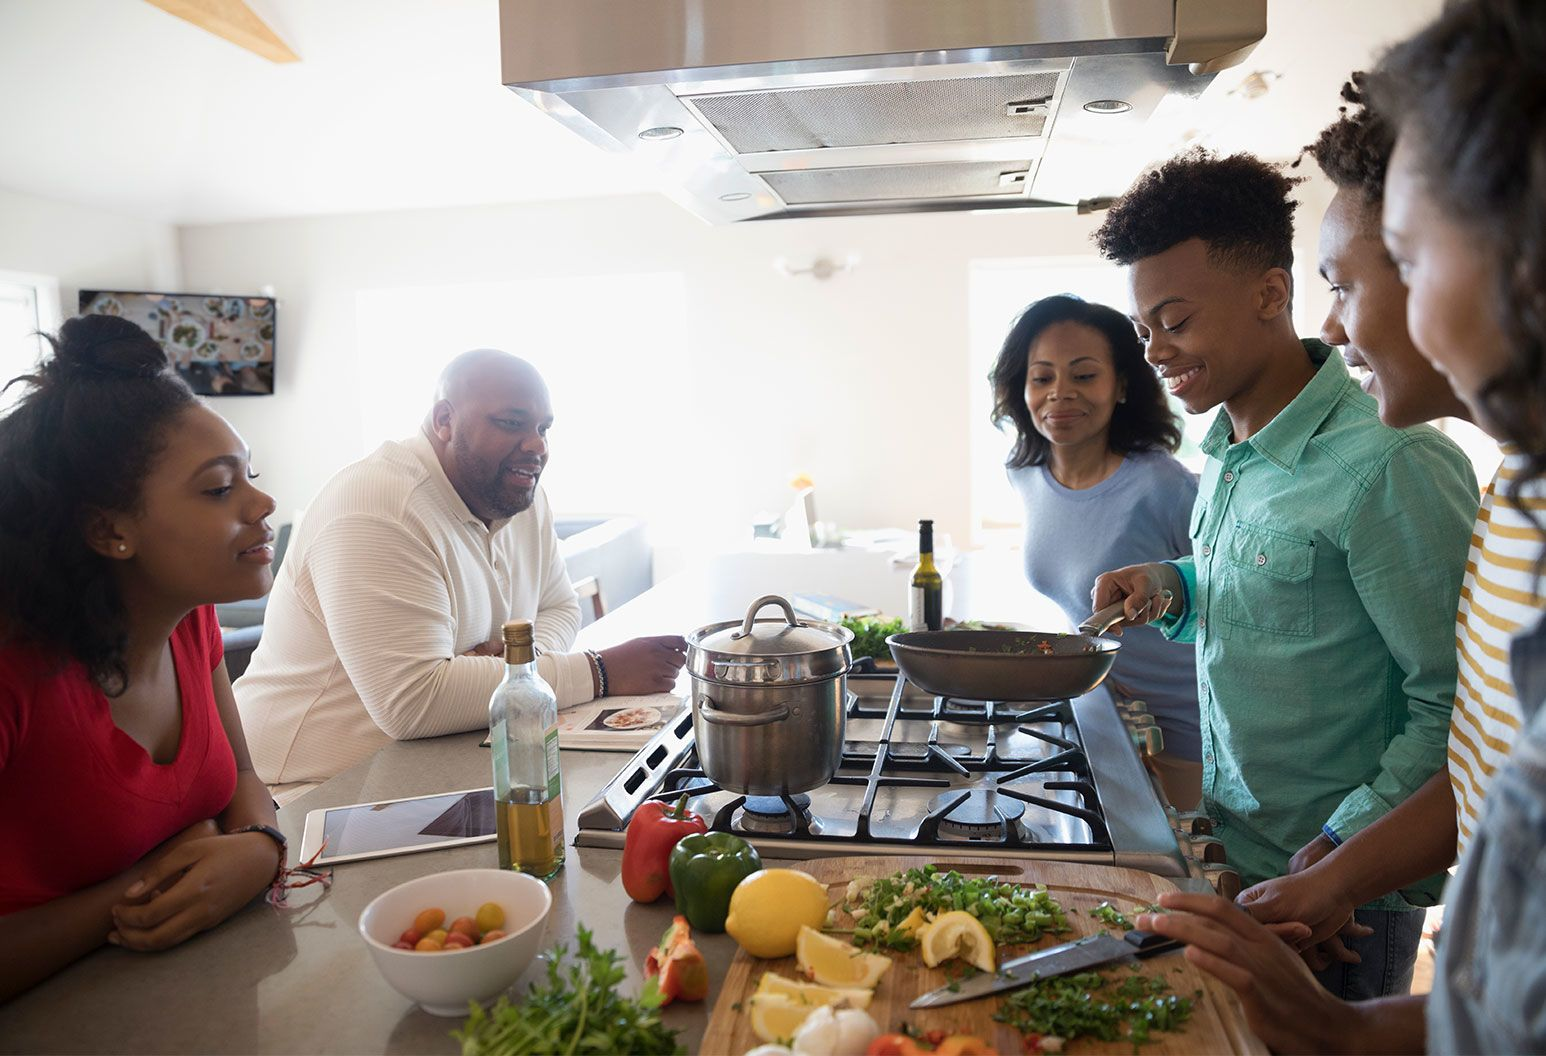 A family gathers around a cooking table. A teenage boy holds a frying pan above the stove as his family watches on and smiles.